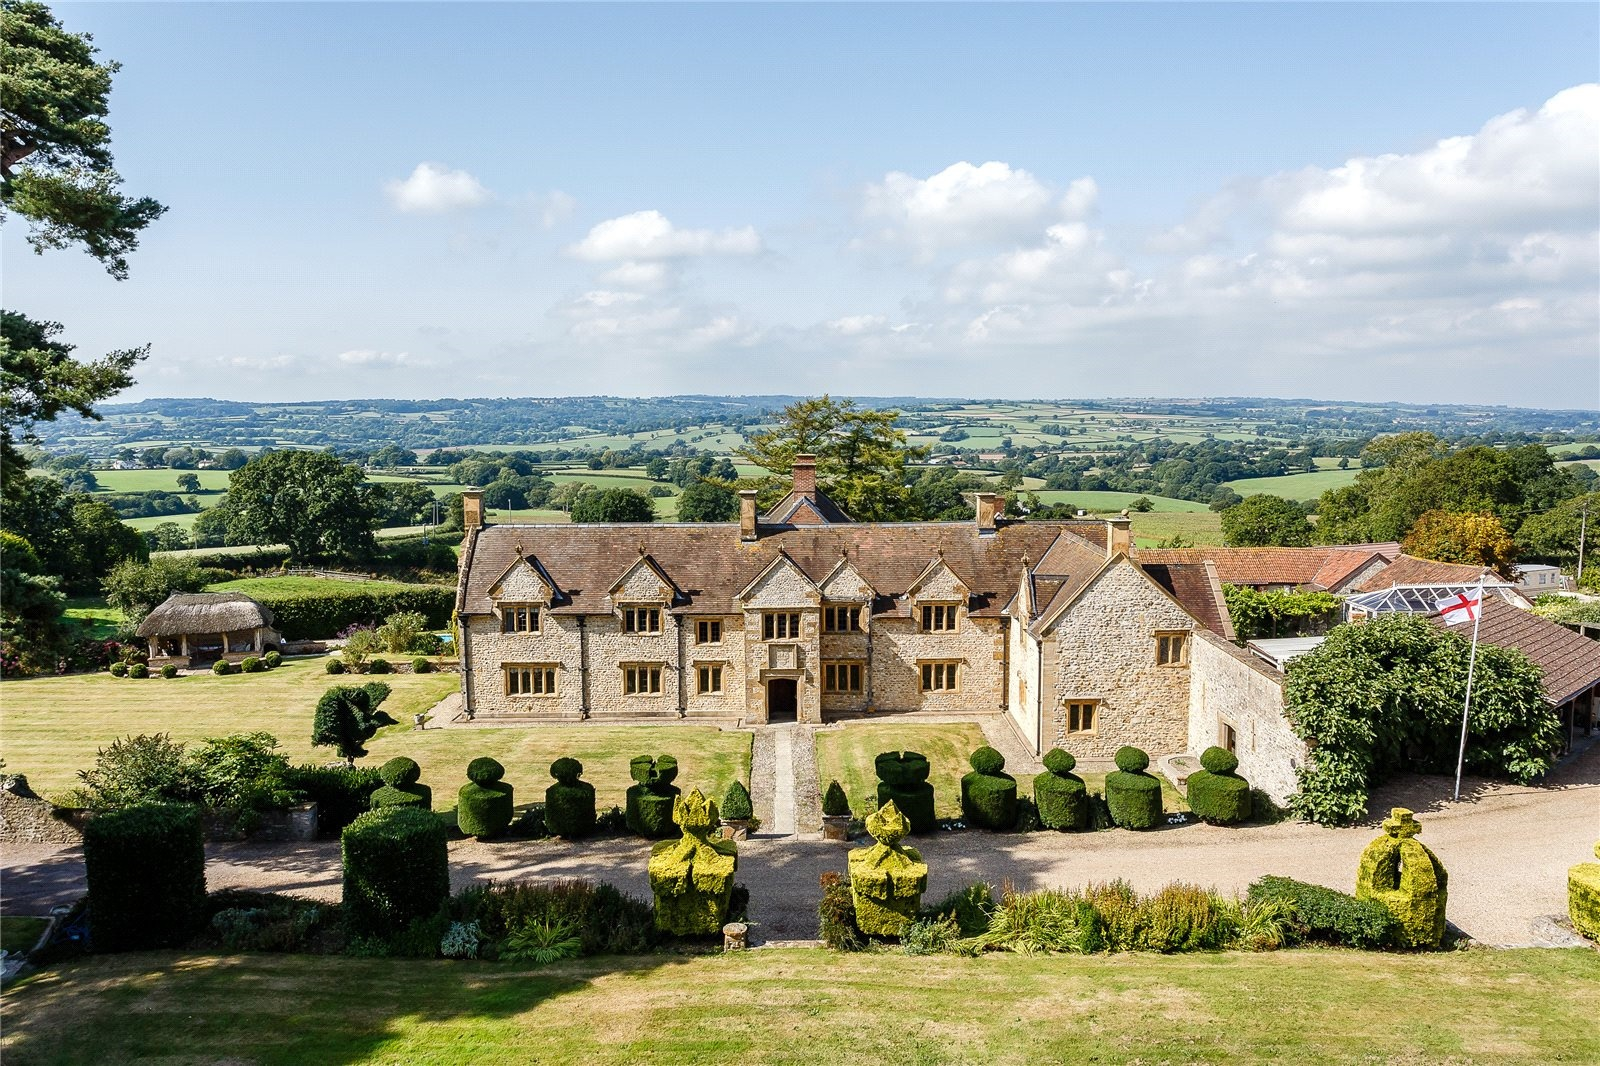 Legend has it that King Charles II spent a night at this circa-1553 Elizabethan manor while fleeing the Roundheads after the final battle of the English Civil War.